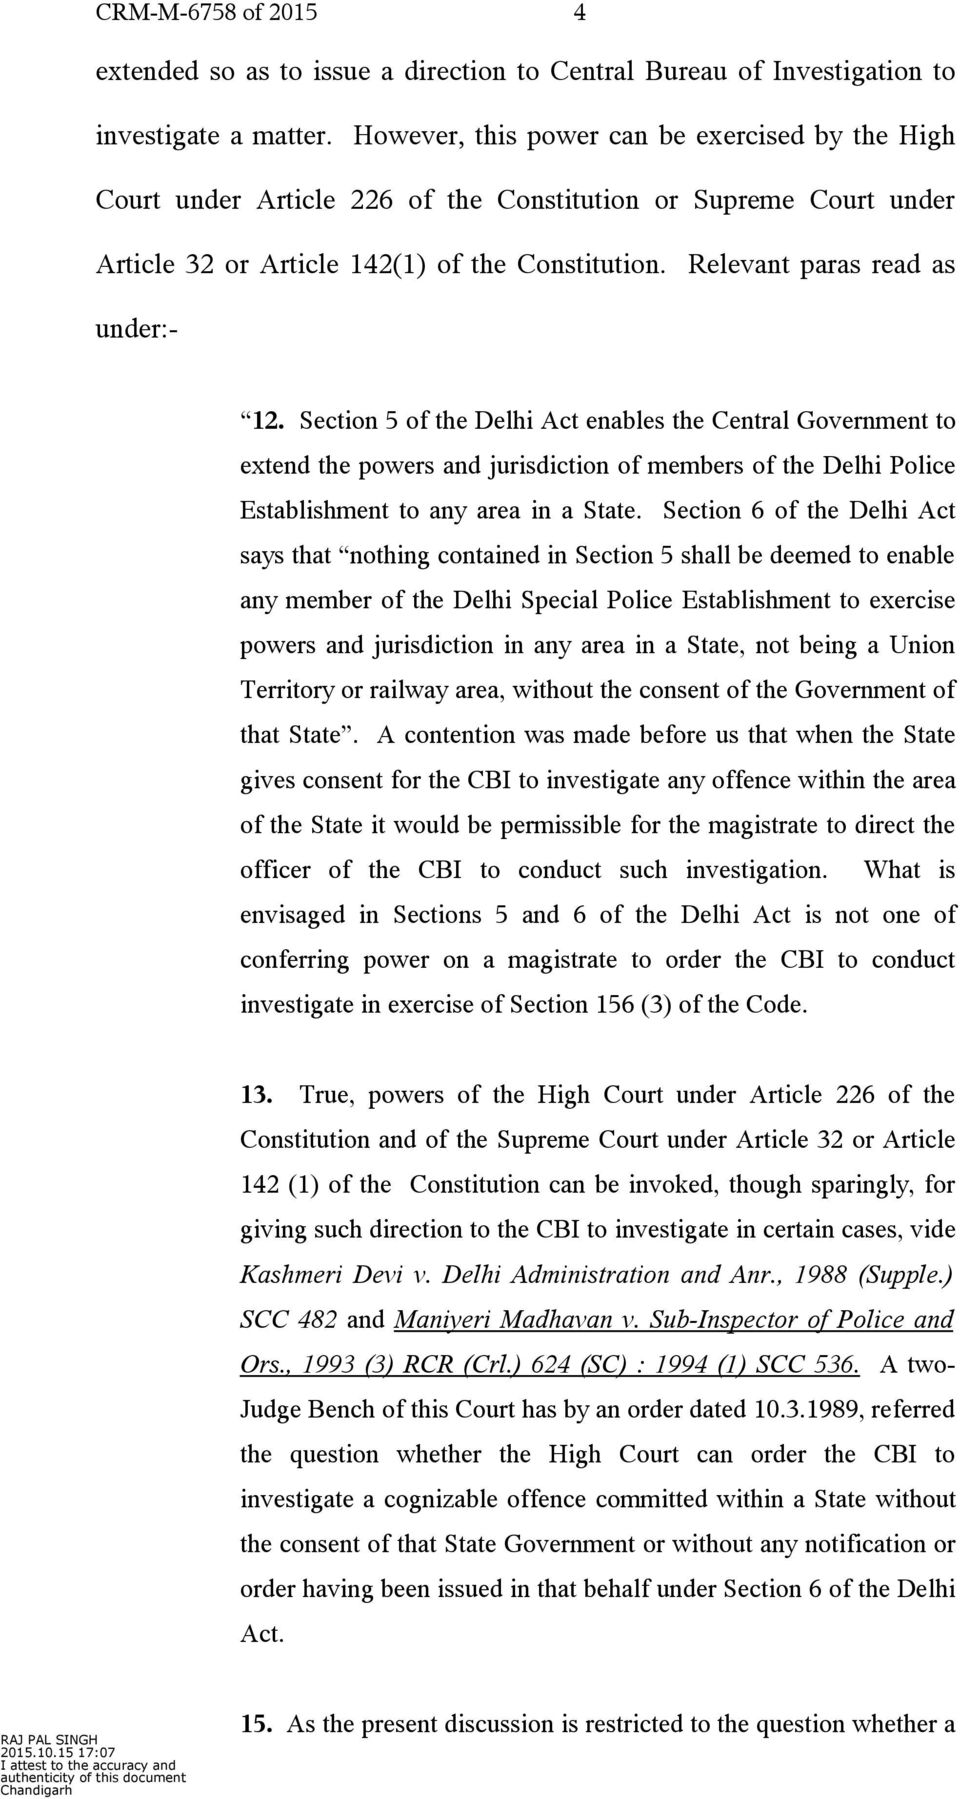 Section 5 of the Delhi Act enables the Central Government to extend the powers and jurisdiction of members of the Delhi Police Establishment to any area in a State.